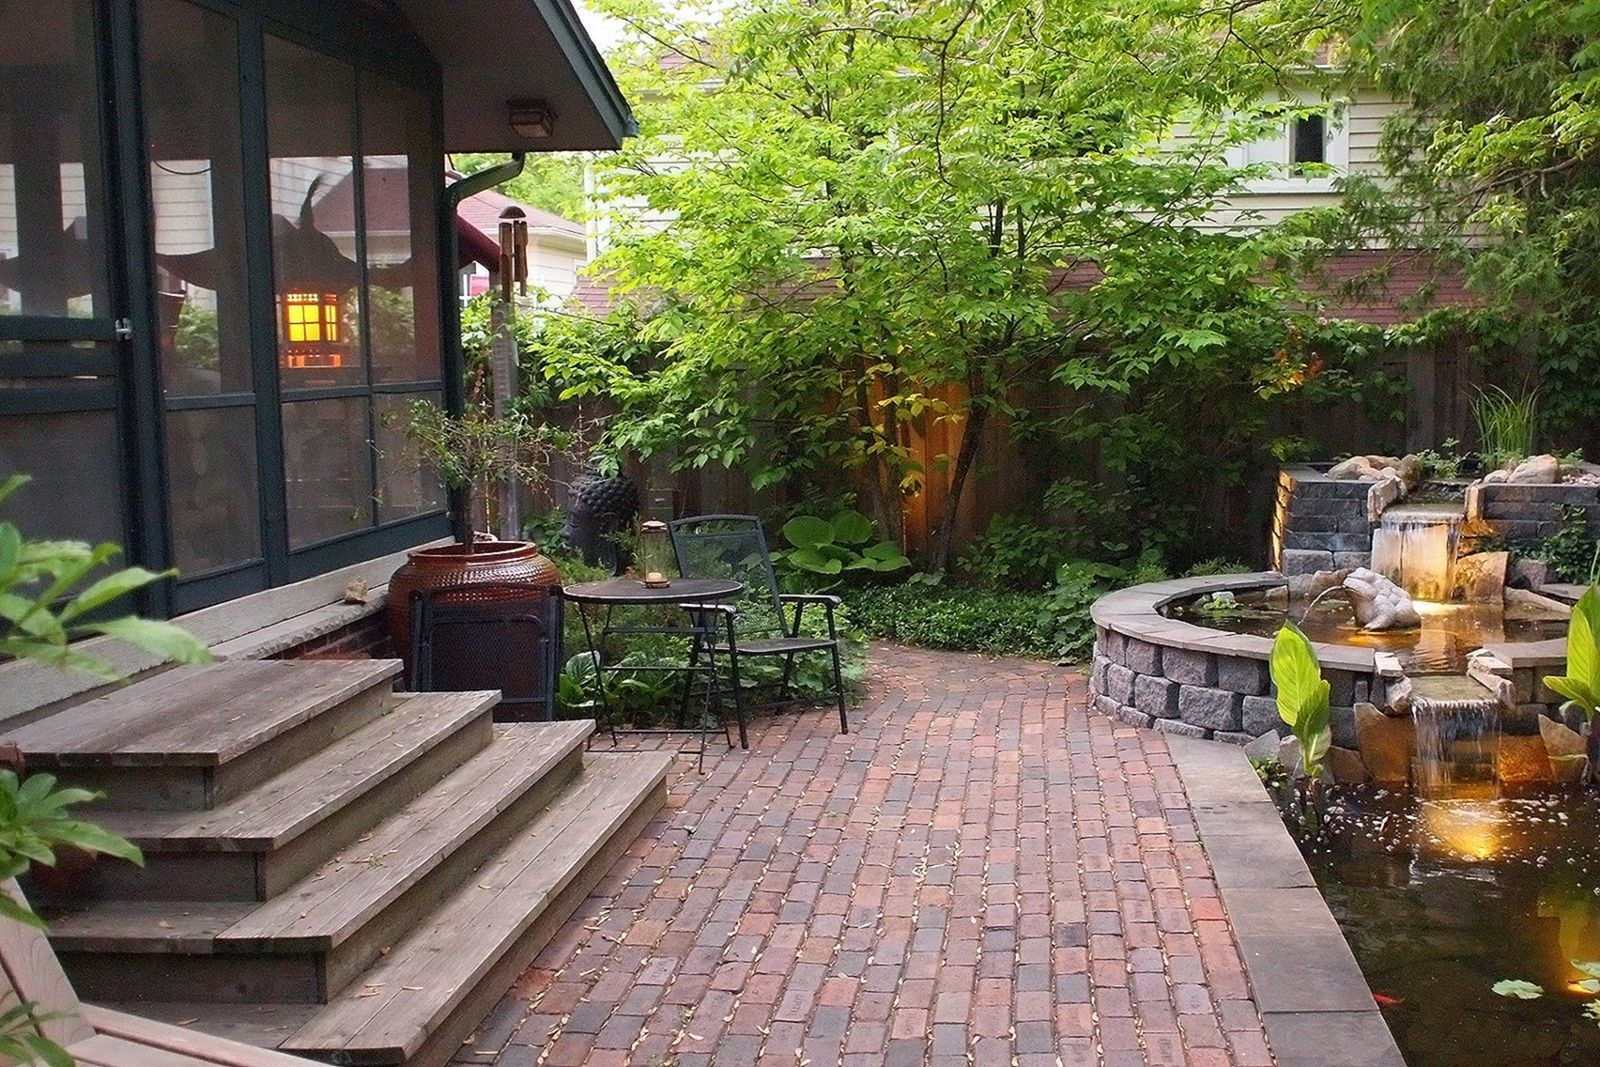 Pin by Carly Shepherd on Vườn Concrete patio makeover